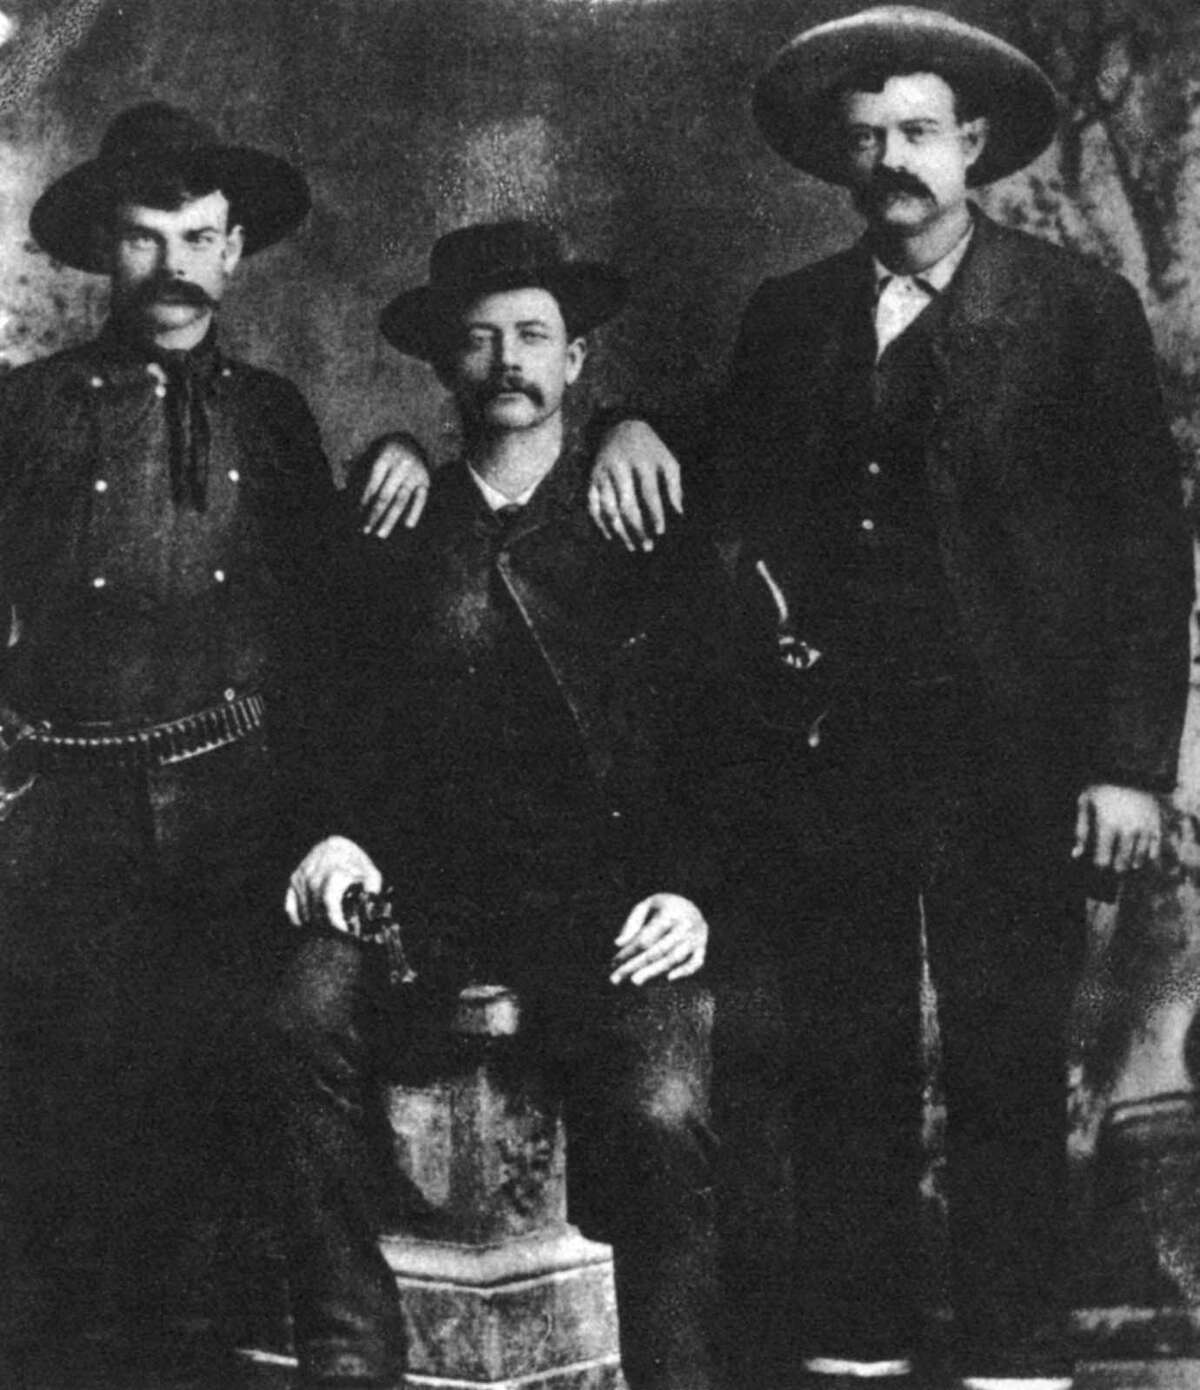 A disputed photograph of the train robber and outlaw Sam Bass, c1877-1878 (1954). Bass is alleged to be the seated figure in the center. He led a gang that held up a Union Pacific train at Big Springs, Nebraska, on 18th September 1877, stealing $60,000. He was shot in an ambush at Round Rock, Texas on July 19, 1878 while scouting the area before a planned bank robbery and died from his wounds the following day. A print from the Pictorial History of the Wild West, by James D Horan and Paul Sann, Spring Books, London, 1954.